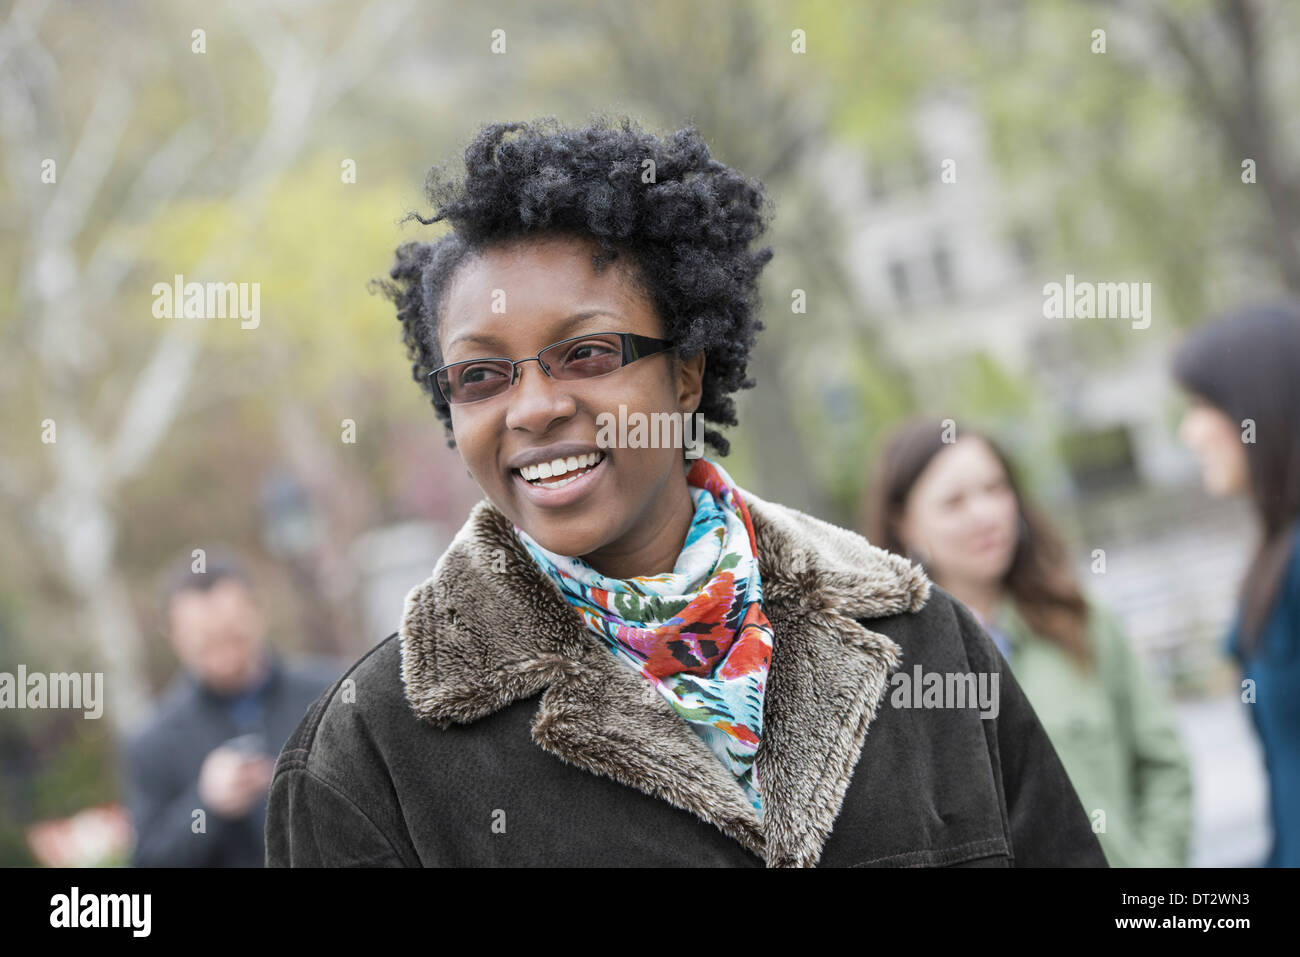 A group of people in a city park A young woman in a coat with a large collar smiling and looking at the camera - Stock Image